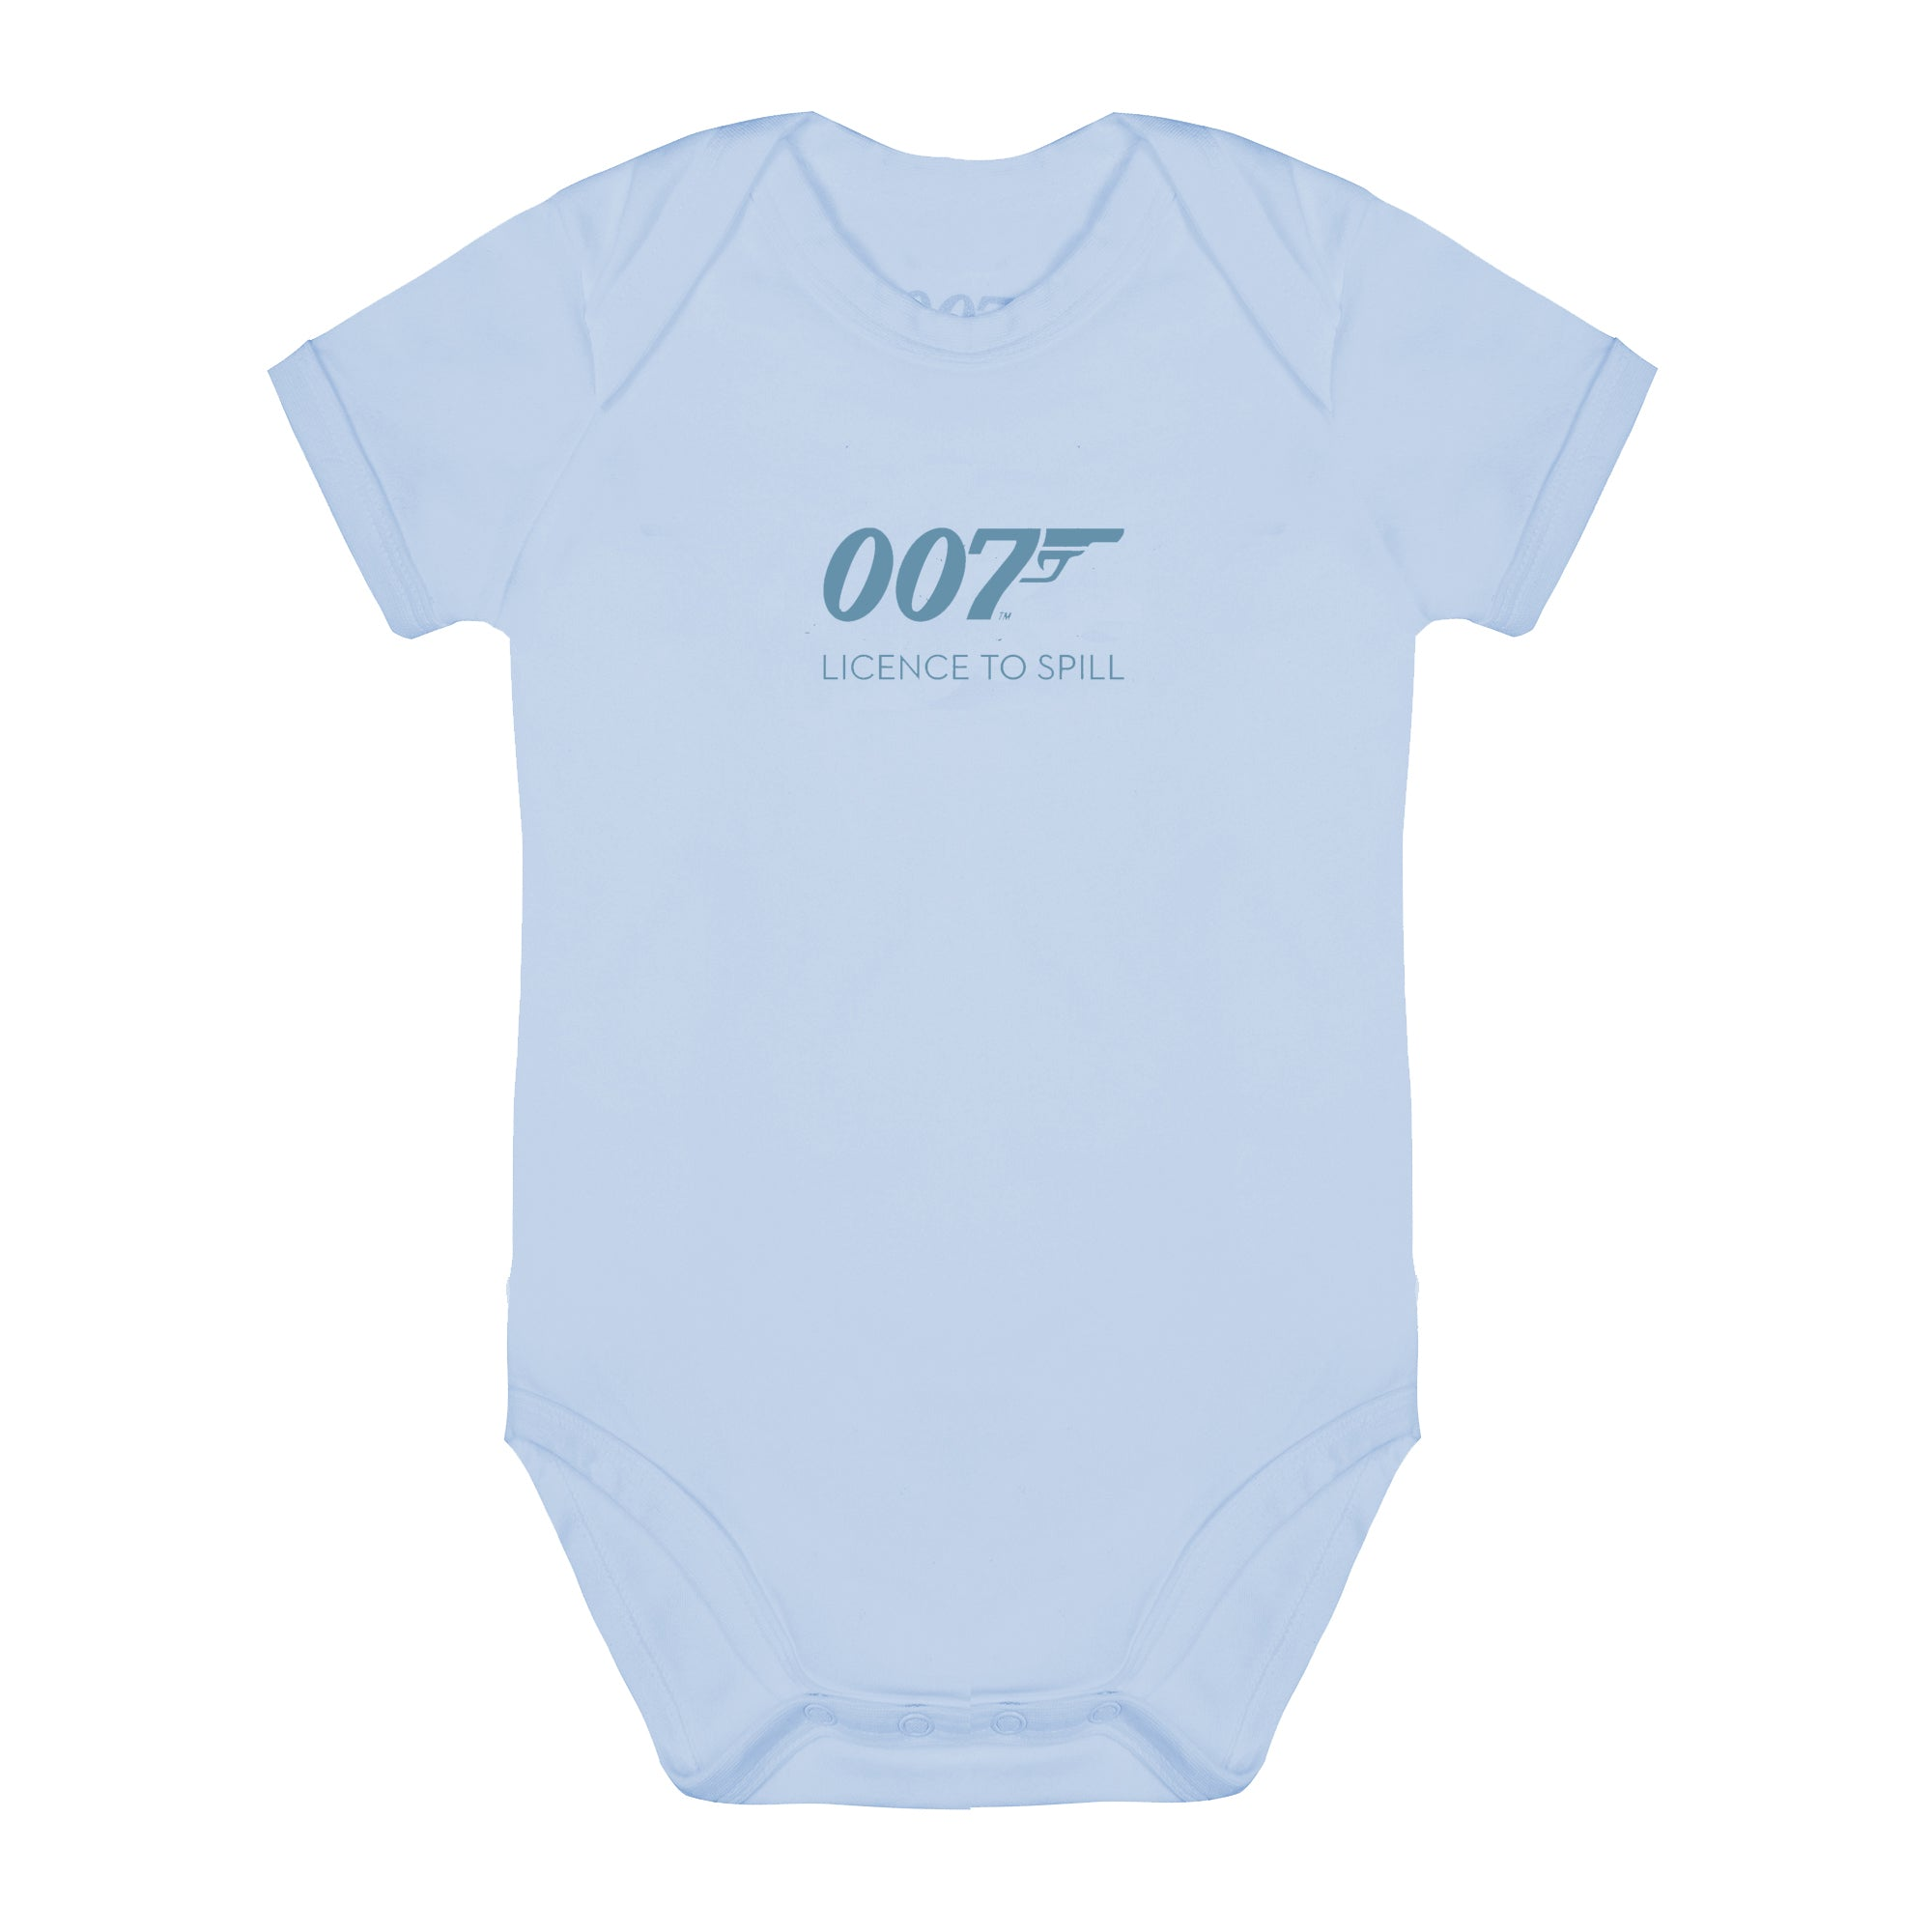 007 Licence To Spill Blue Baby Bodysuit